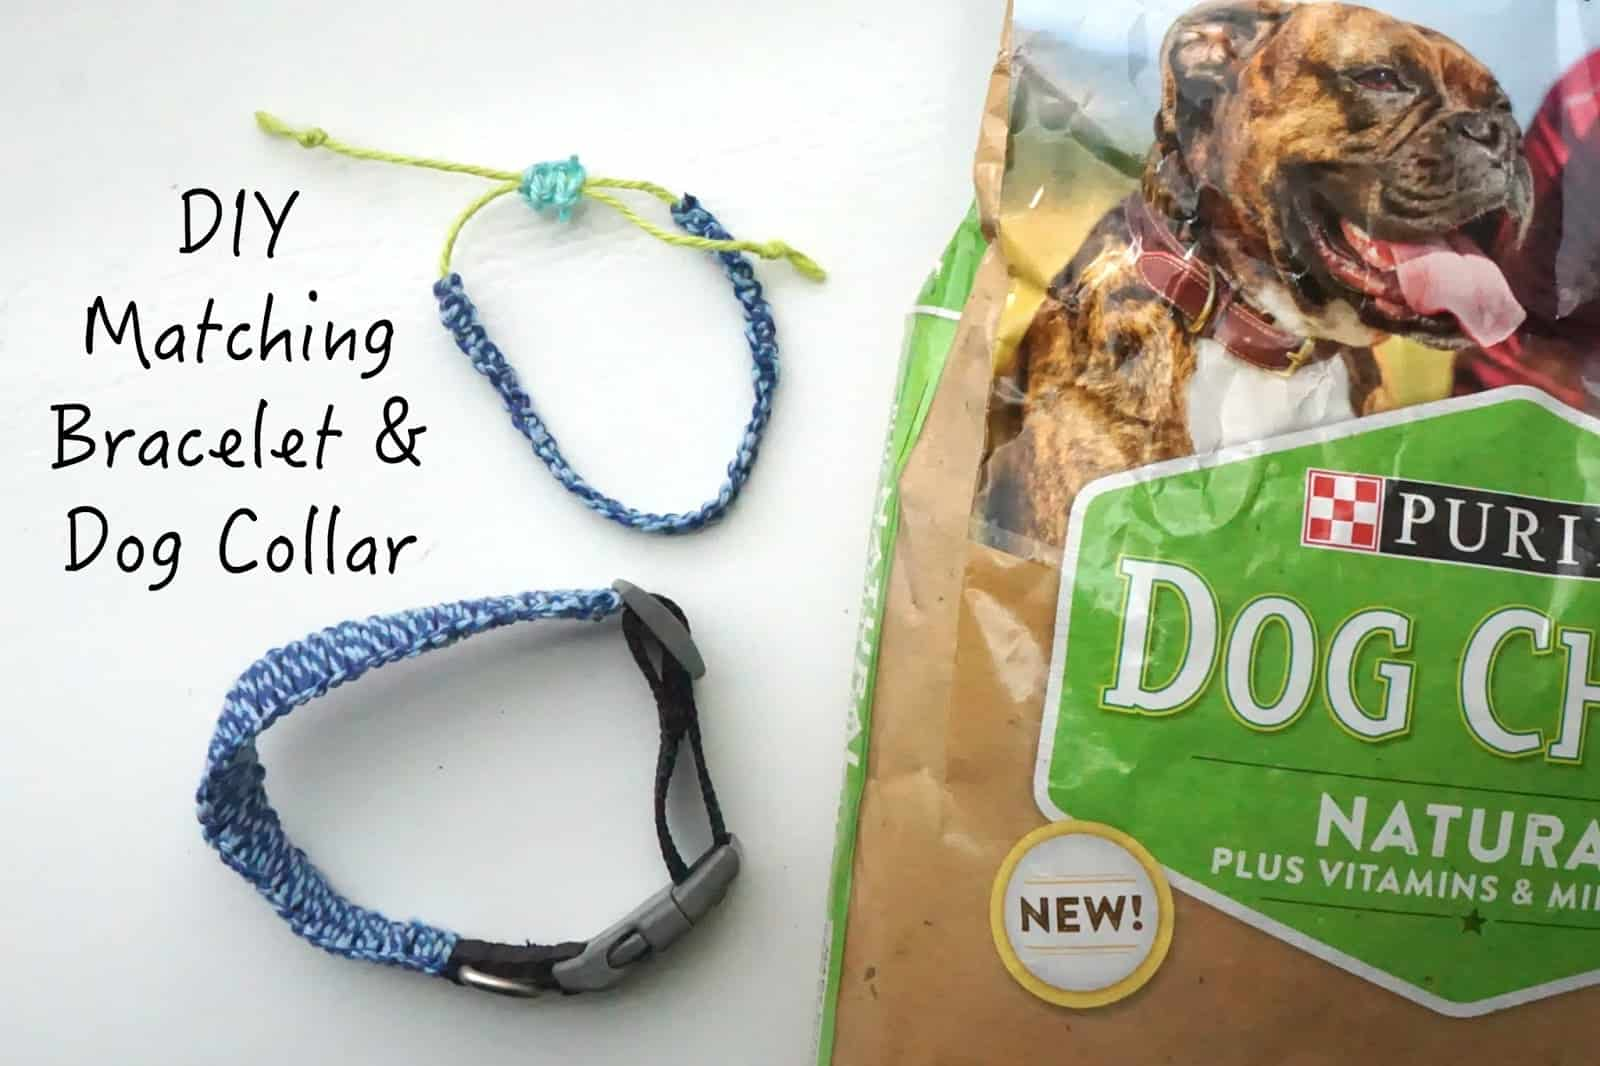 Matching diy bracelet and dog collar set